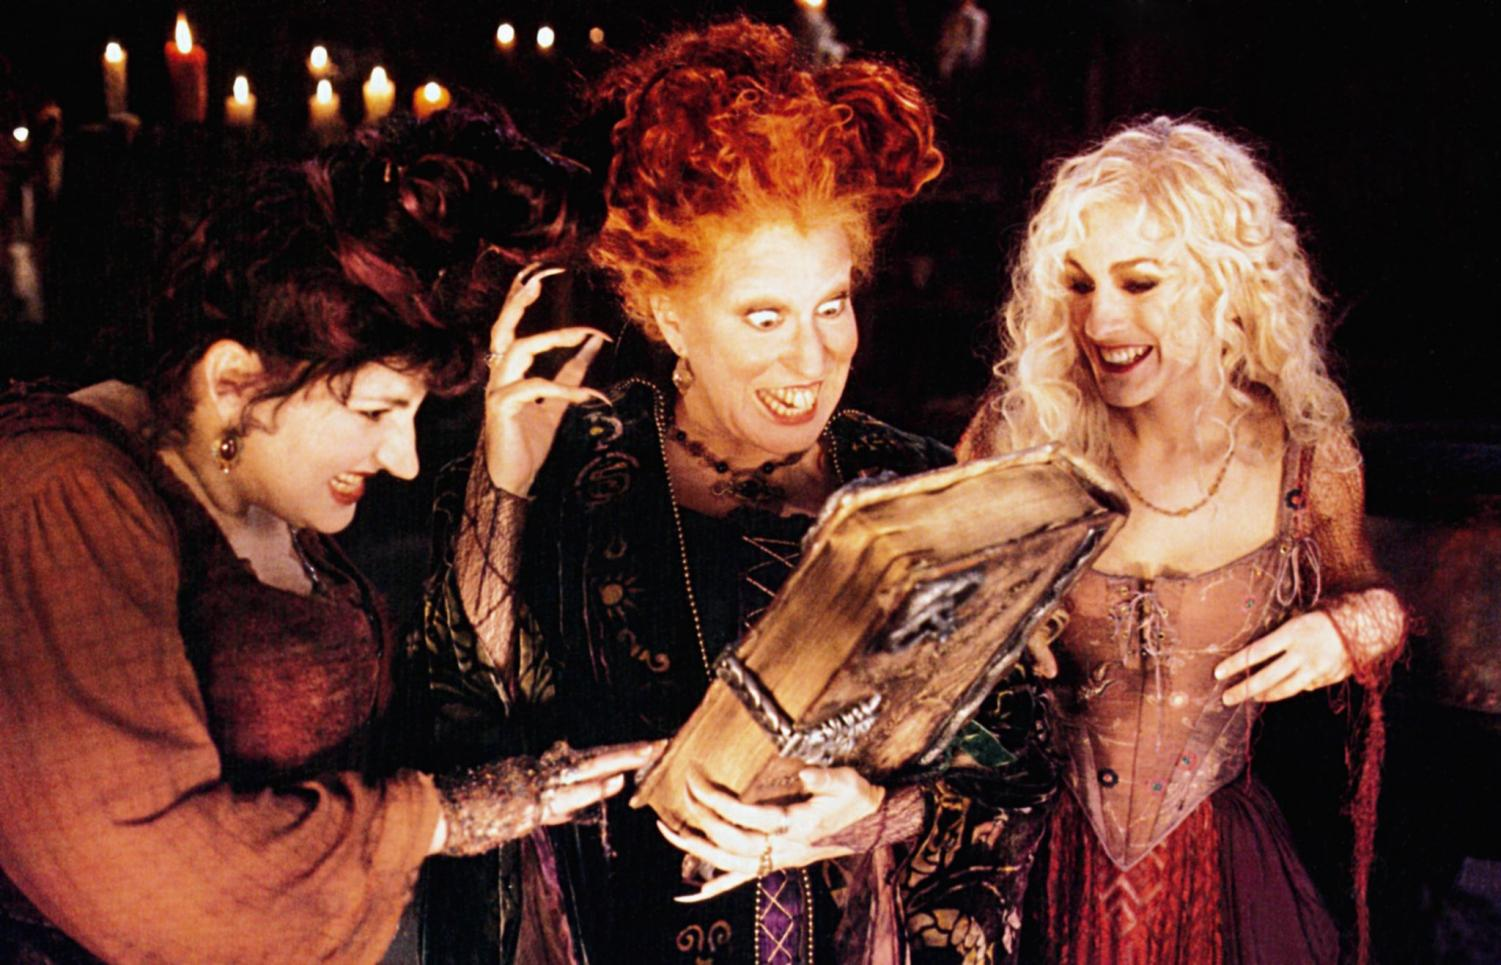 The Sanderson sisters in the original Hocus Pocus.